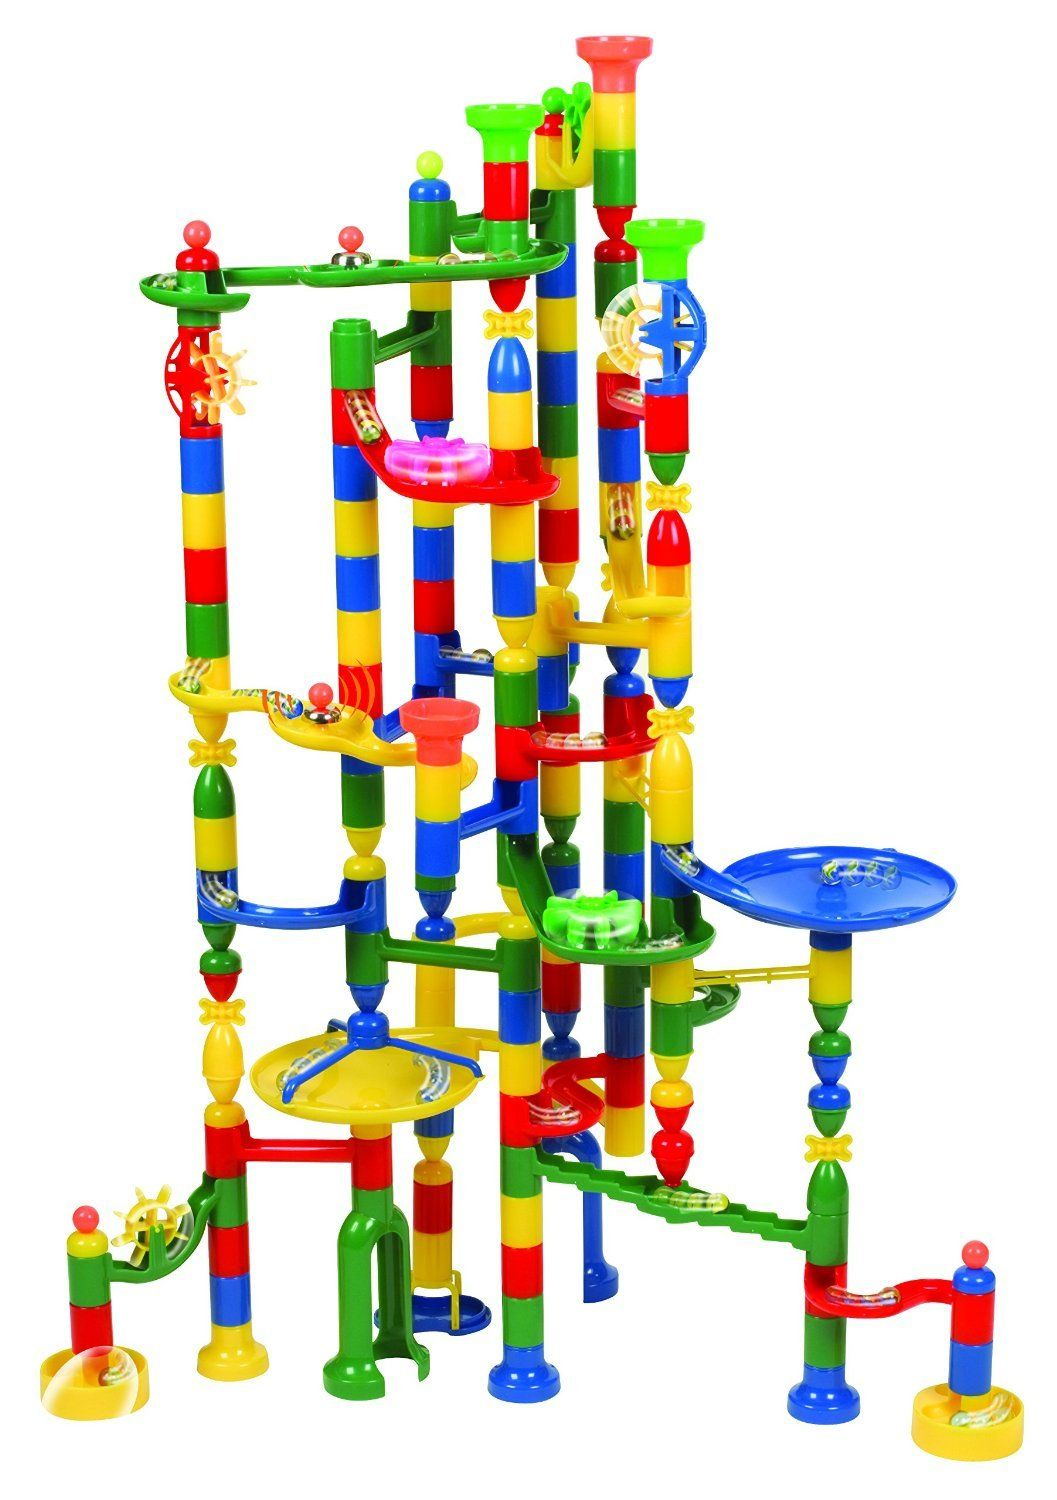 Edushape Marbulous Marble Run - 202 Pieces + 50 Marbles!! (Total 252 Pc Set) Sturdy Setups with Clear Step-by-step Illustrated Instructions in Four Different Skills Levels!